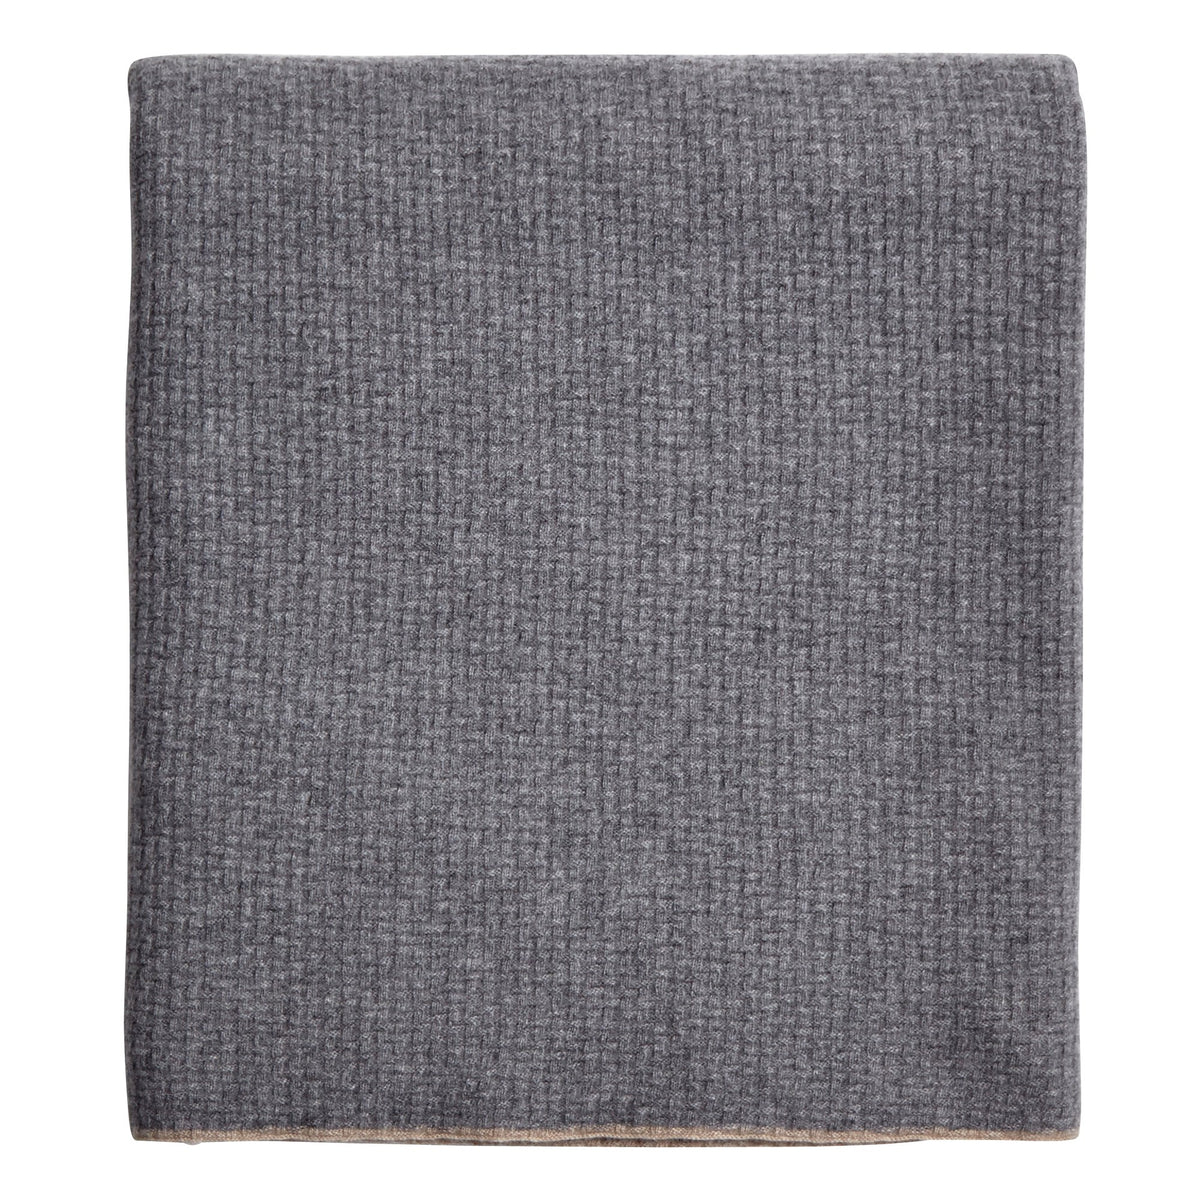 Sorrento Rice Grey Cashmere Throw